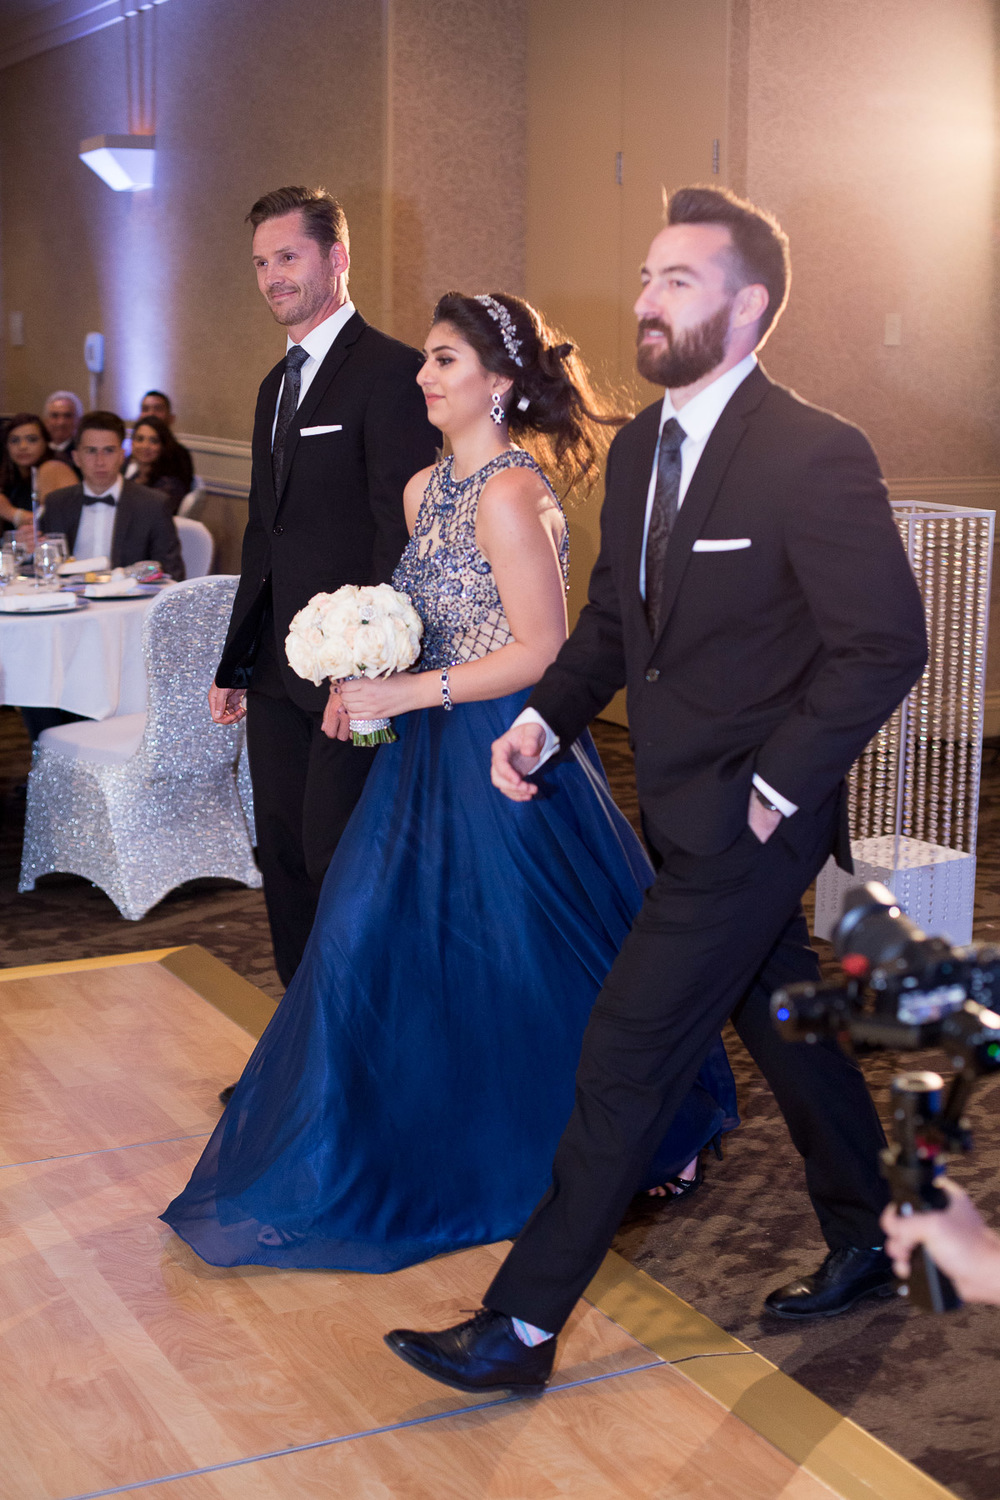 nadia_marc_weddingday (402 of 662).jpg